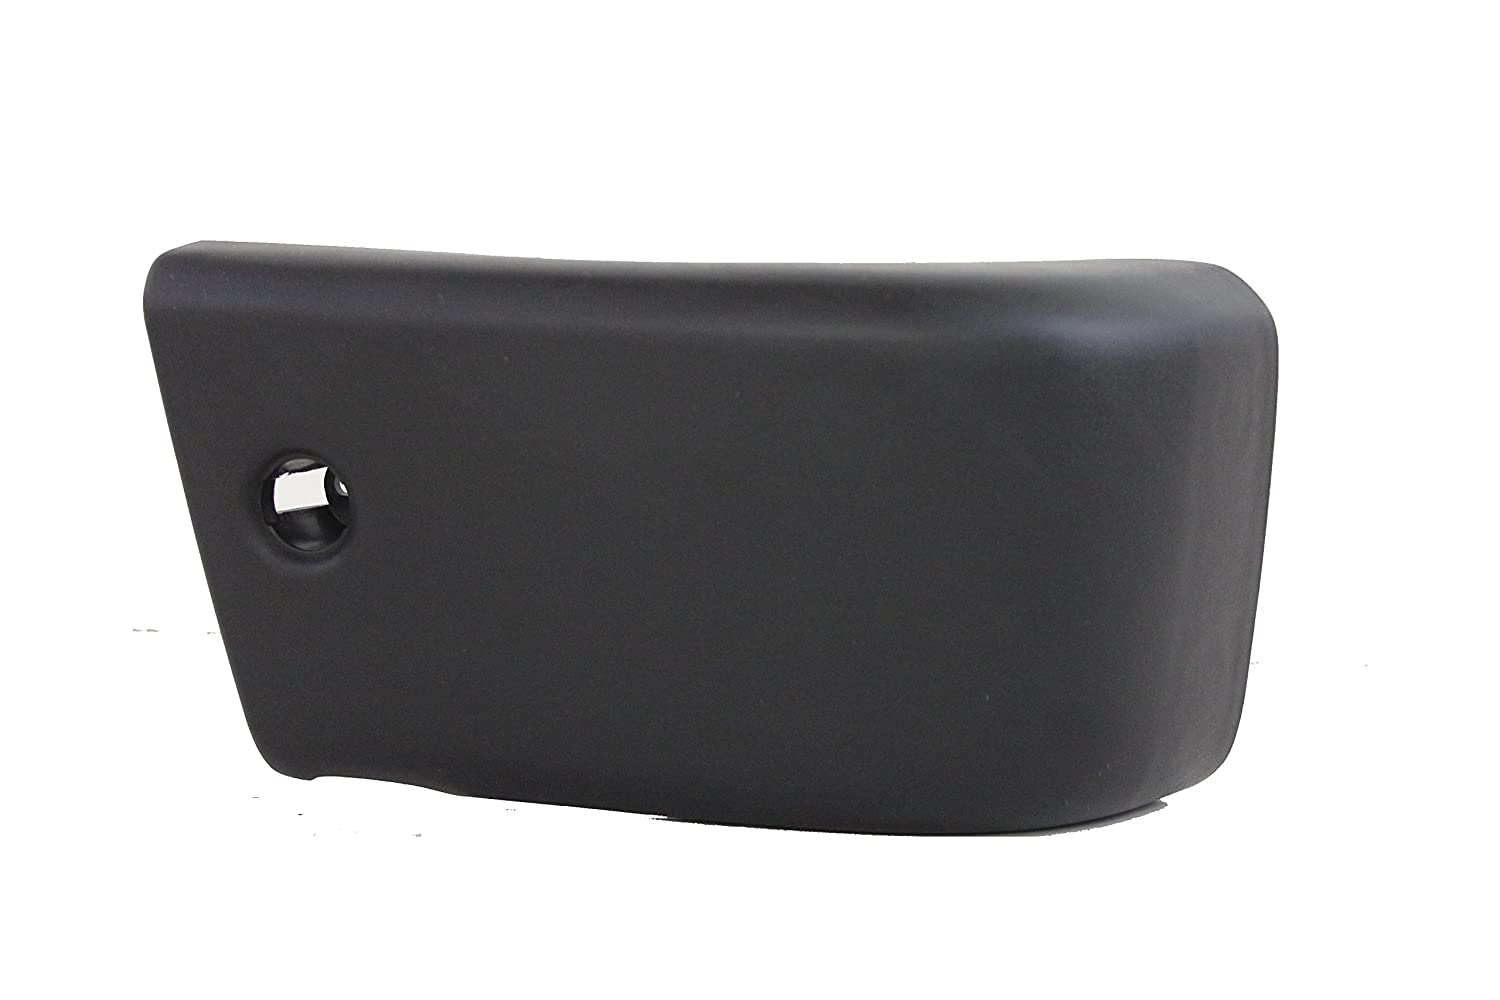 Genuine Toyota Parts 52102-89106 Passenger Side Front Bumper Extension Outer